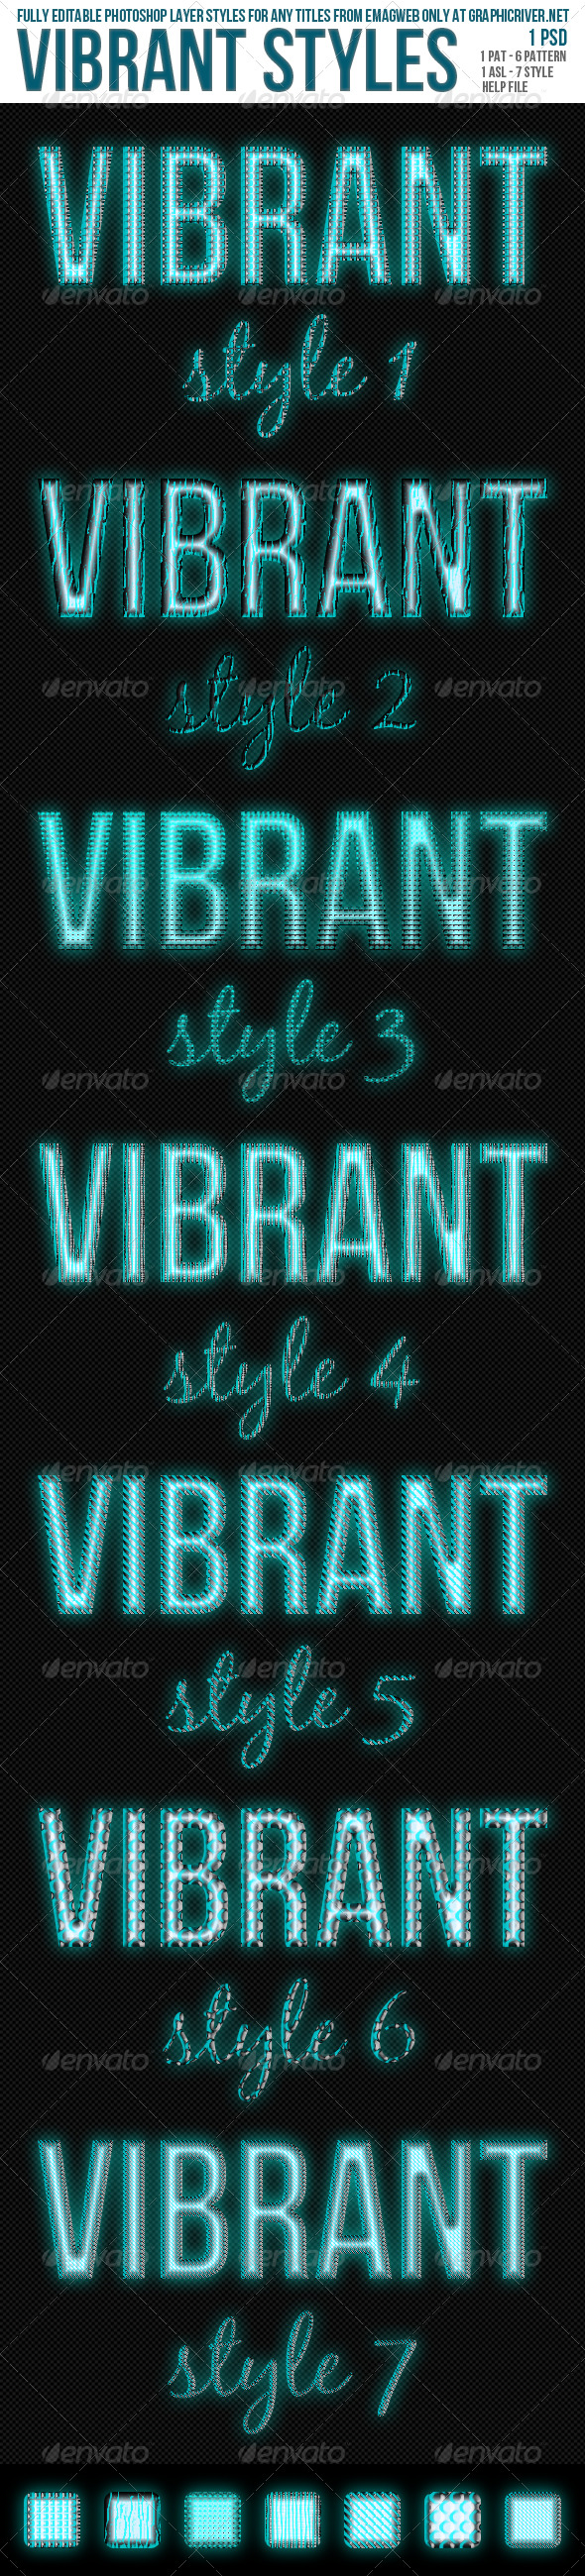 Vibrant Styles - Text Effects Styles